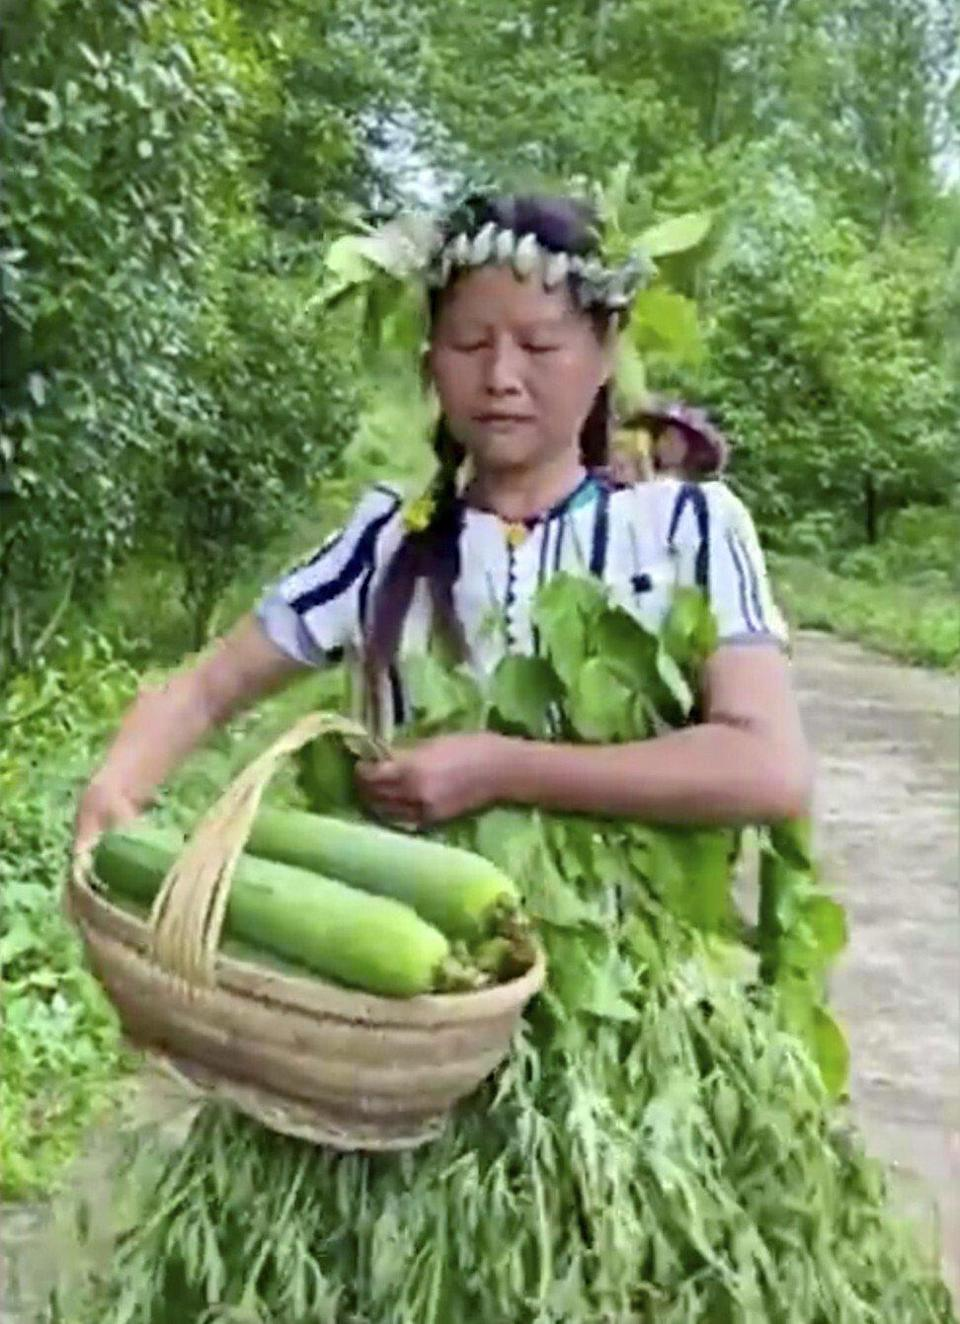 Rural women dancing in Hawaiian grass skirts on social media were trying to revive a limp vegetable market. Photo: Hunan Today